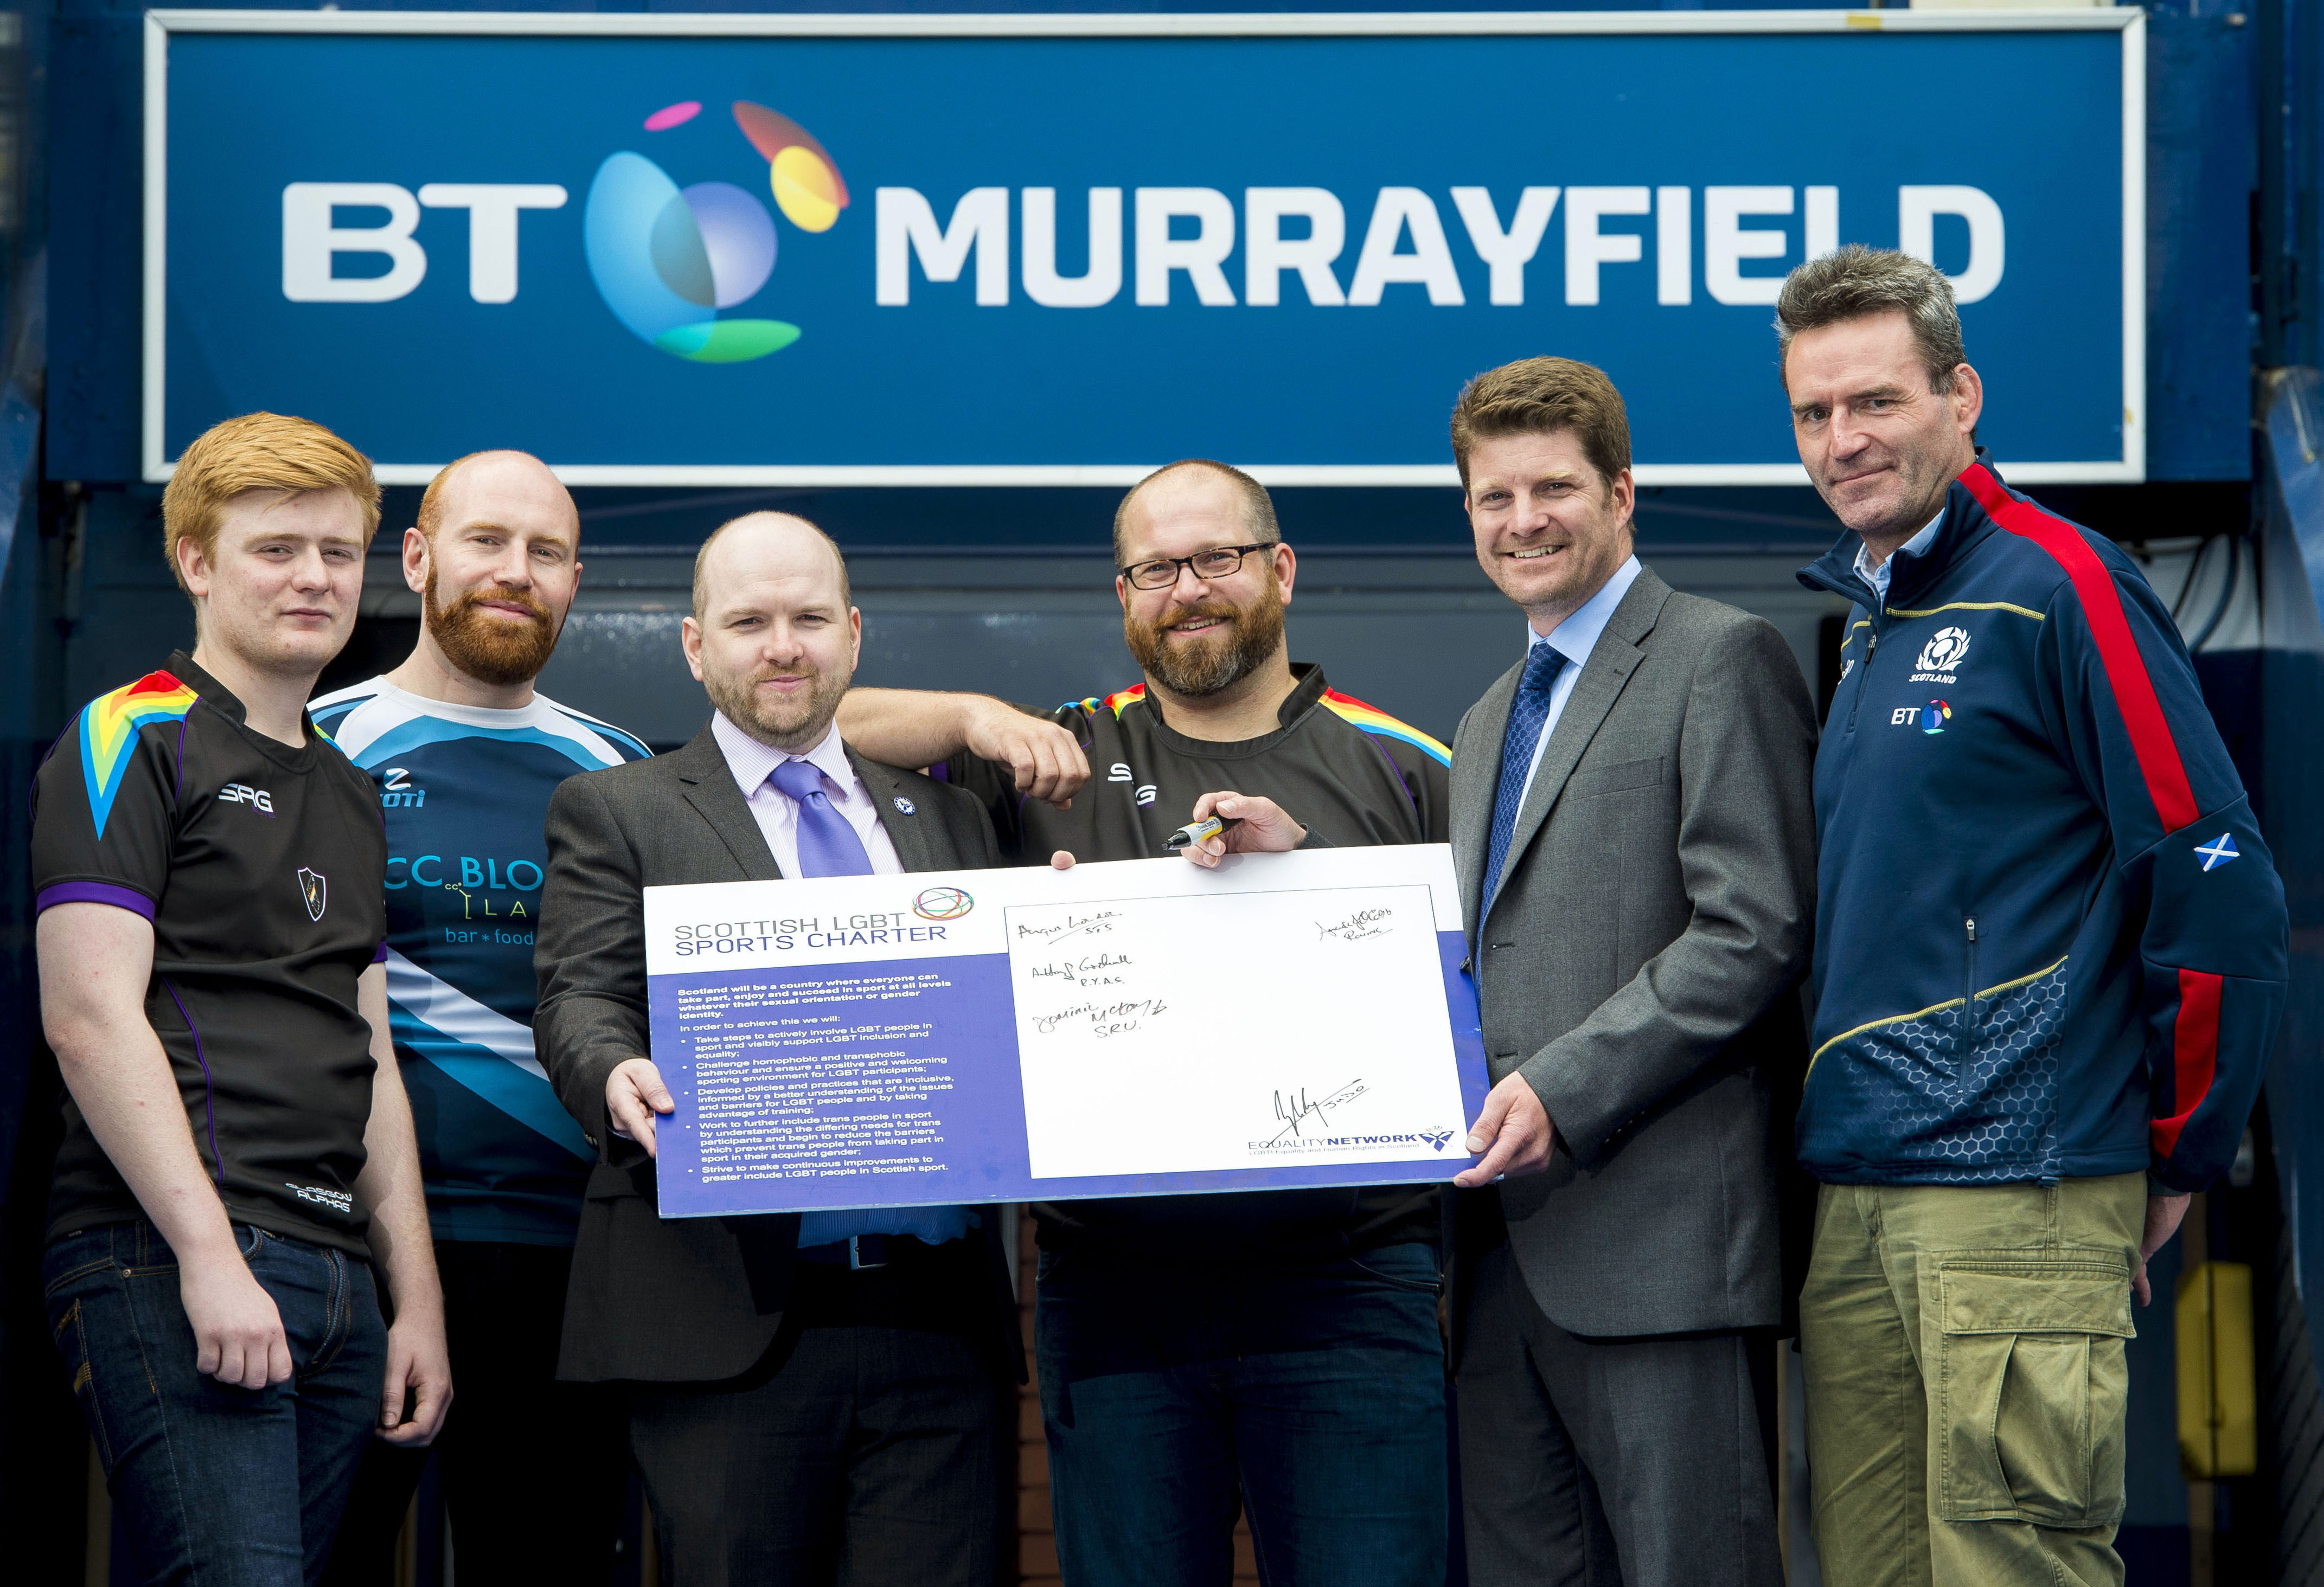 09/08/16 - 16080907 - SCOTTISH RUGBY UNION BT MURRAYFIELD - EDINBURGH Scottish Rugby signing the Equality Network's LGBT Charter Munro Stevenson (Publicity/Media rep. -Glasgow Alphas) Neil Fox (captain of Caledonian Thebans) Scott Cuthbertson (Equality Network) Boris Pichotka (secretary of Glasgow Alphas) Dominic Mckay Pete Young (SRU Outreach and equality manager ).